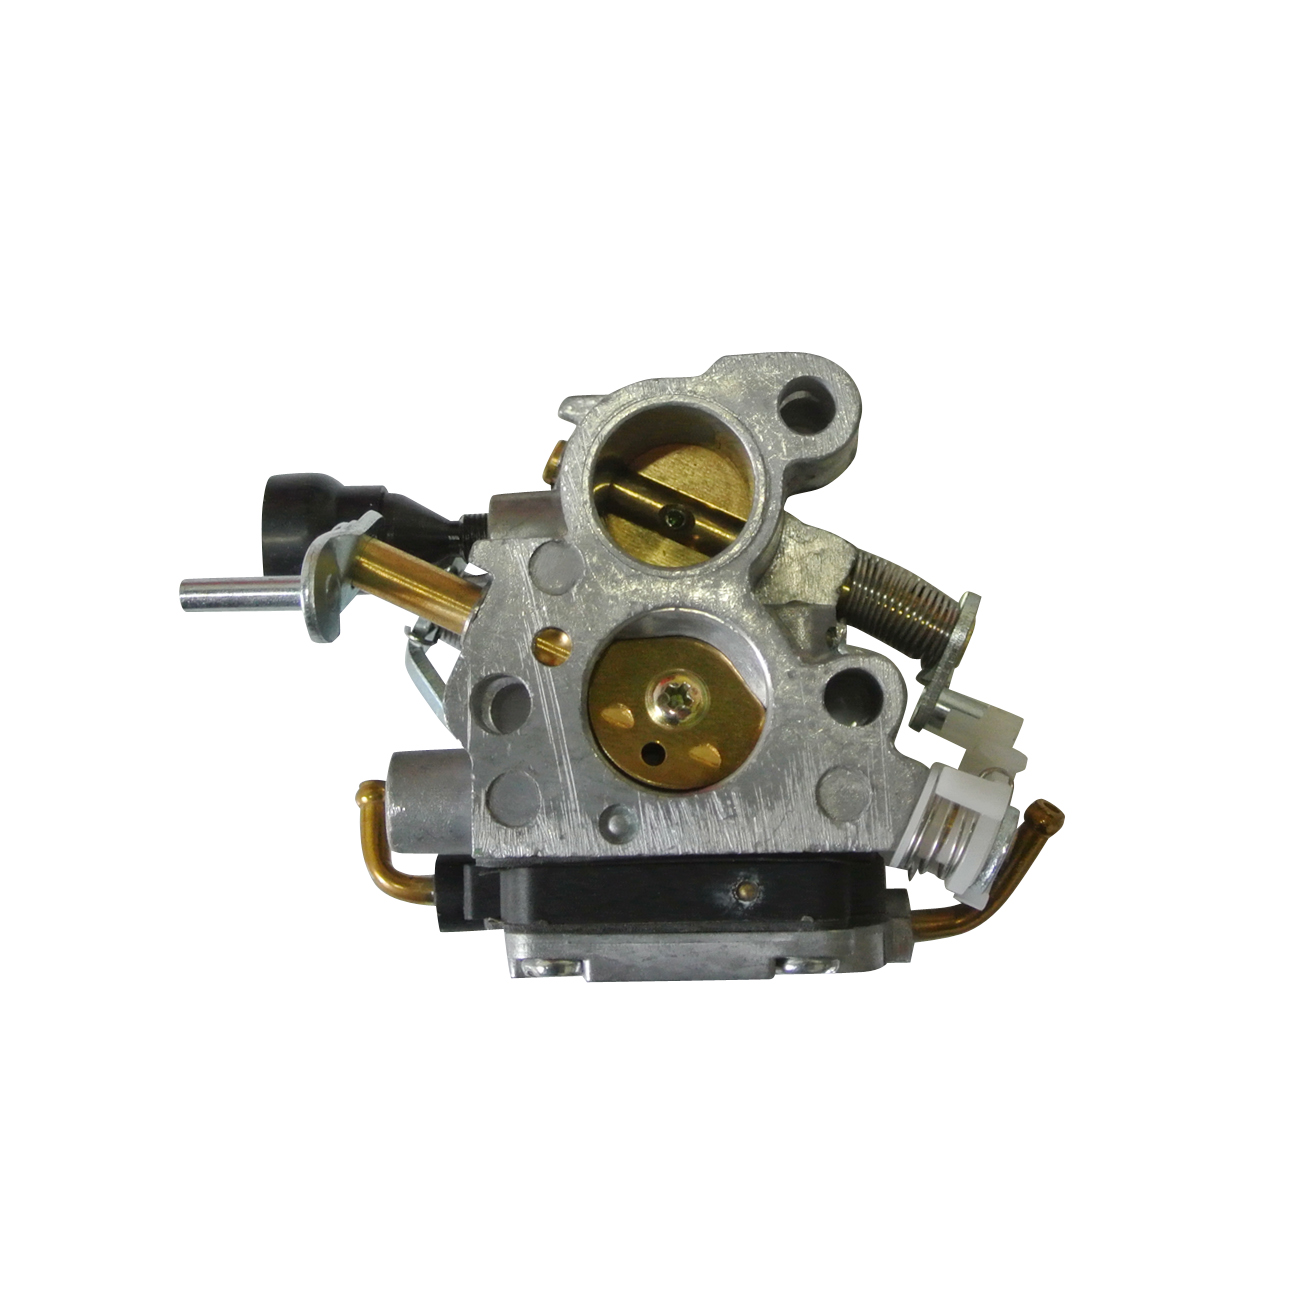 Carburetor Carb For Husqvarna 435 & 440 Chainsaw 506450501